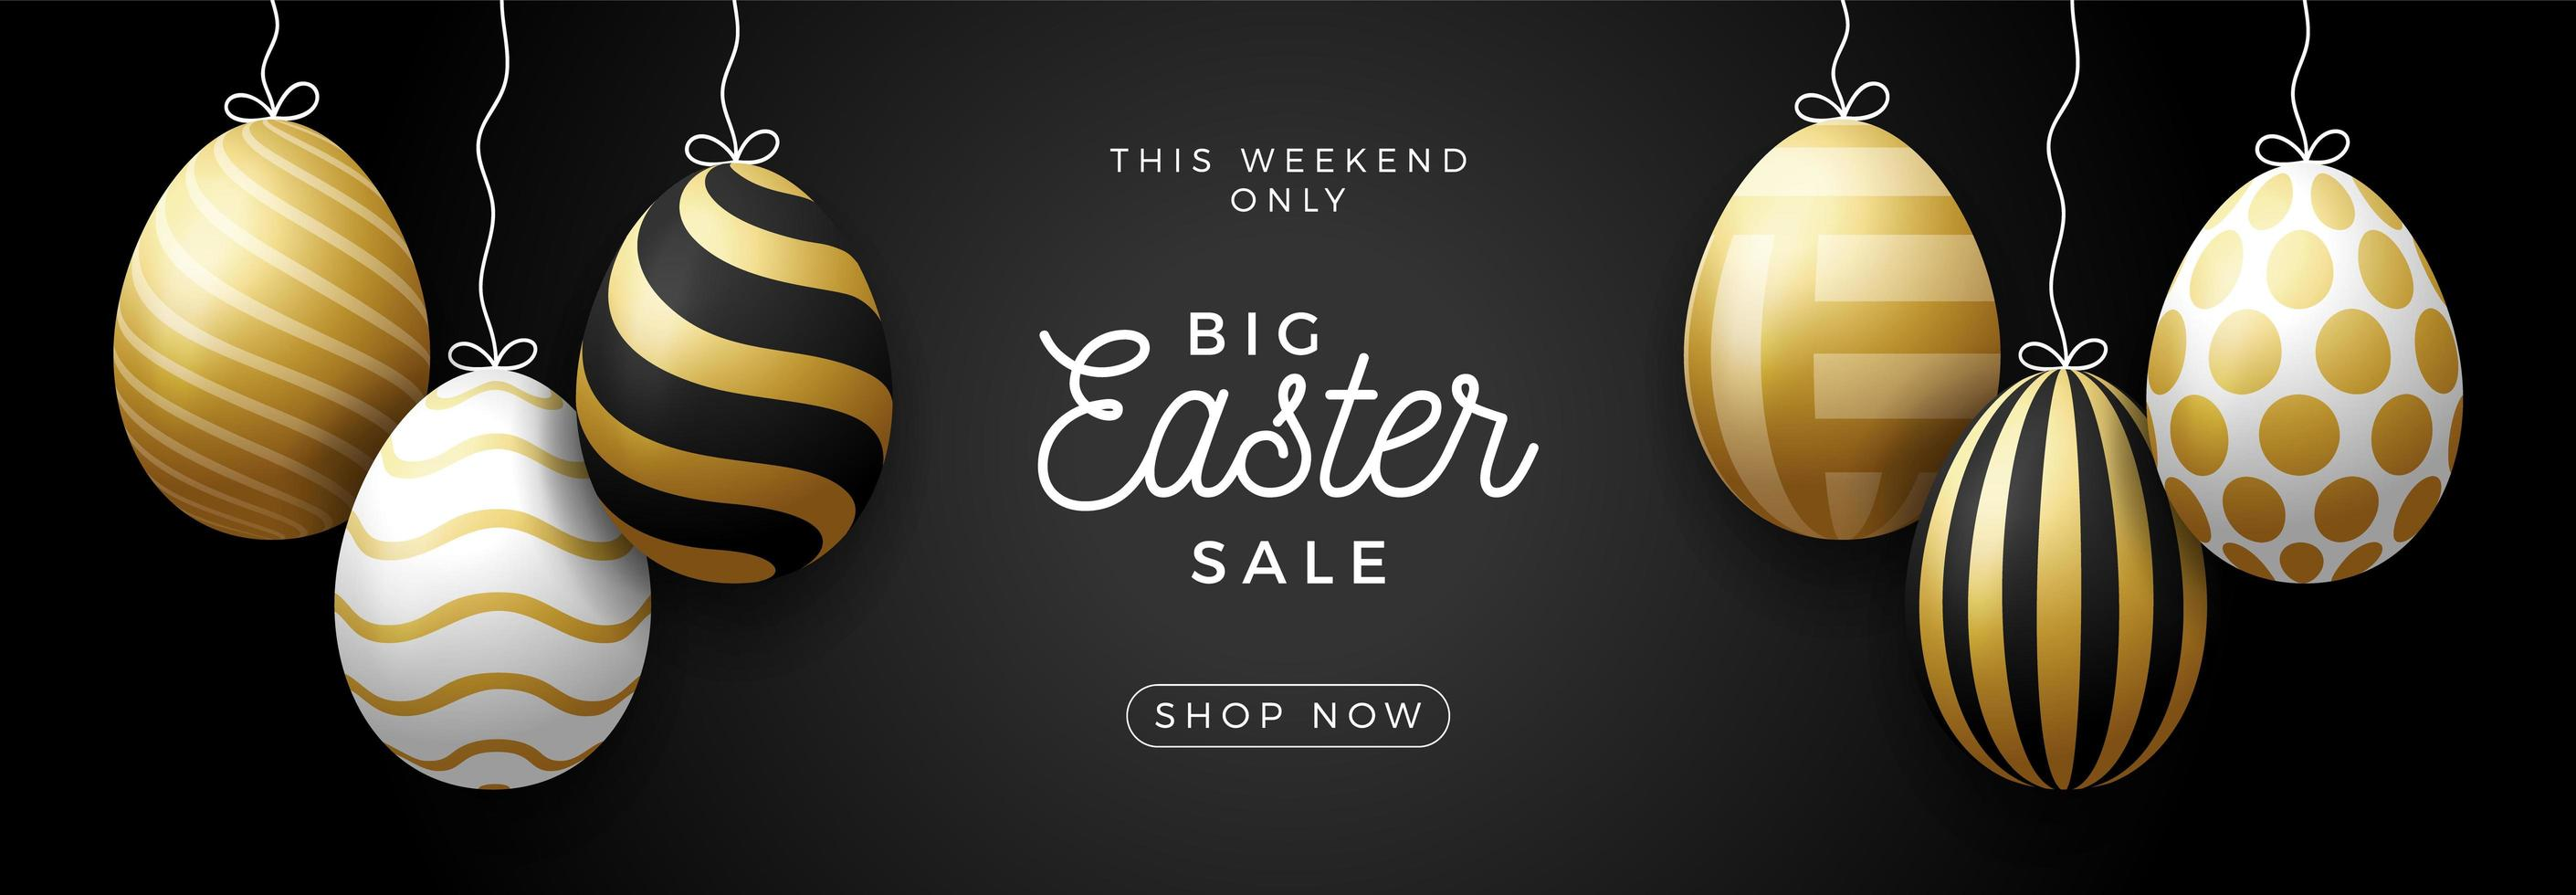 Luxury Easter egg sale horizontal banner vector